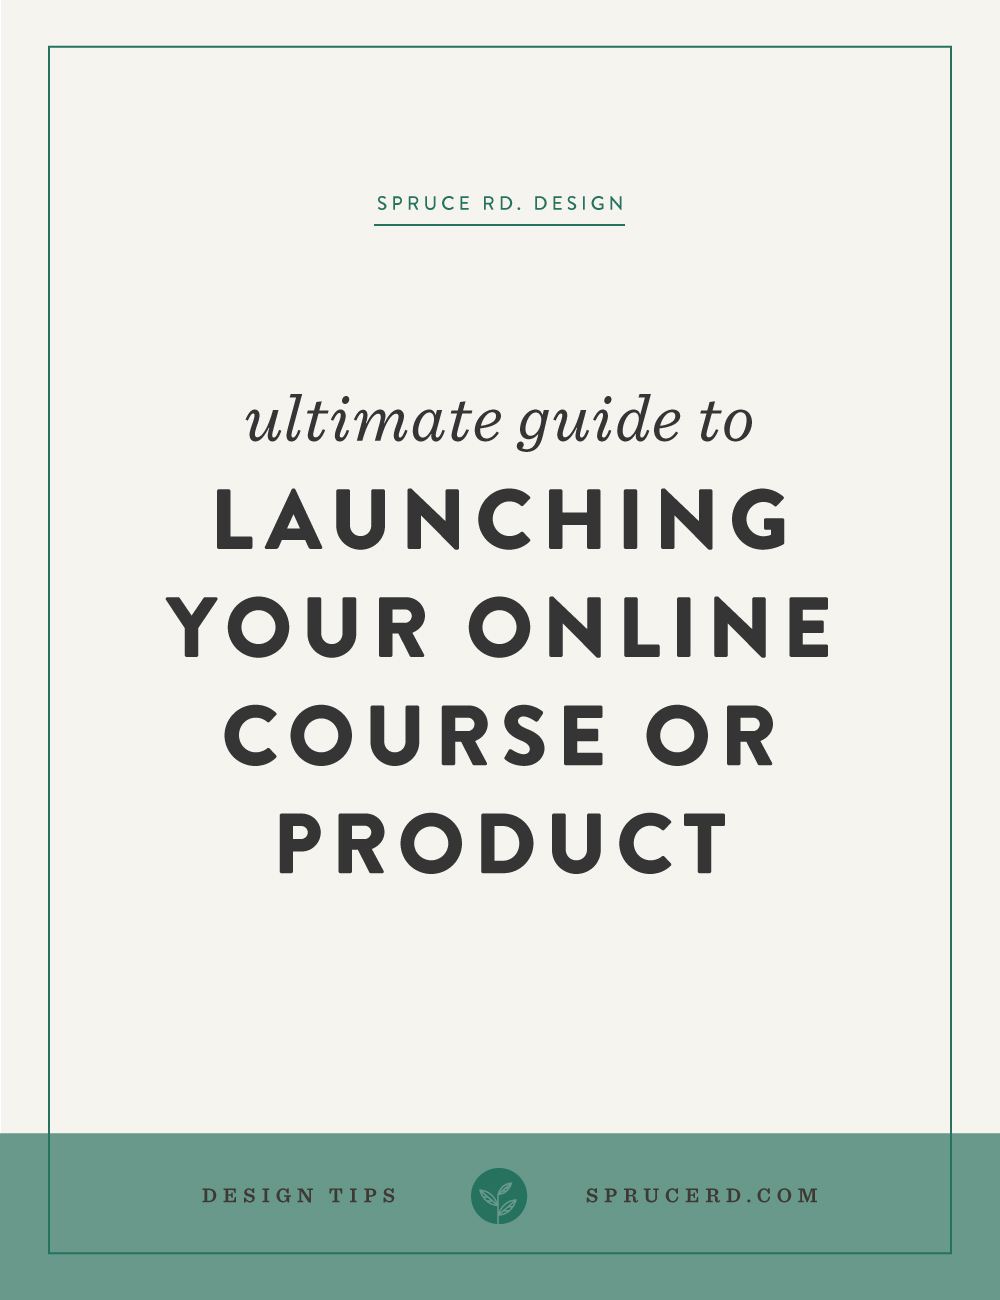 Ultimate guide to launching your online course or product | Spruce Rd.